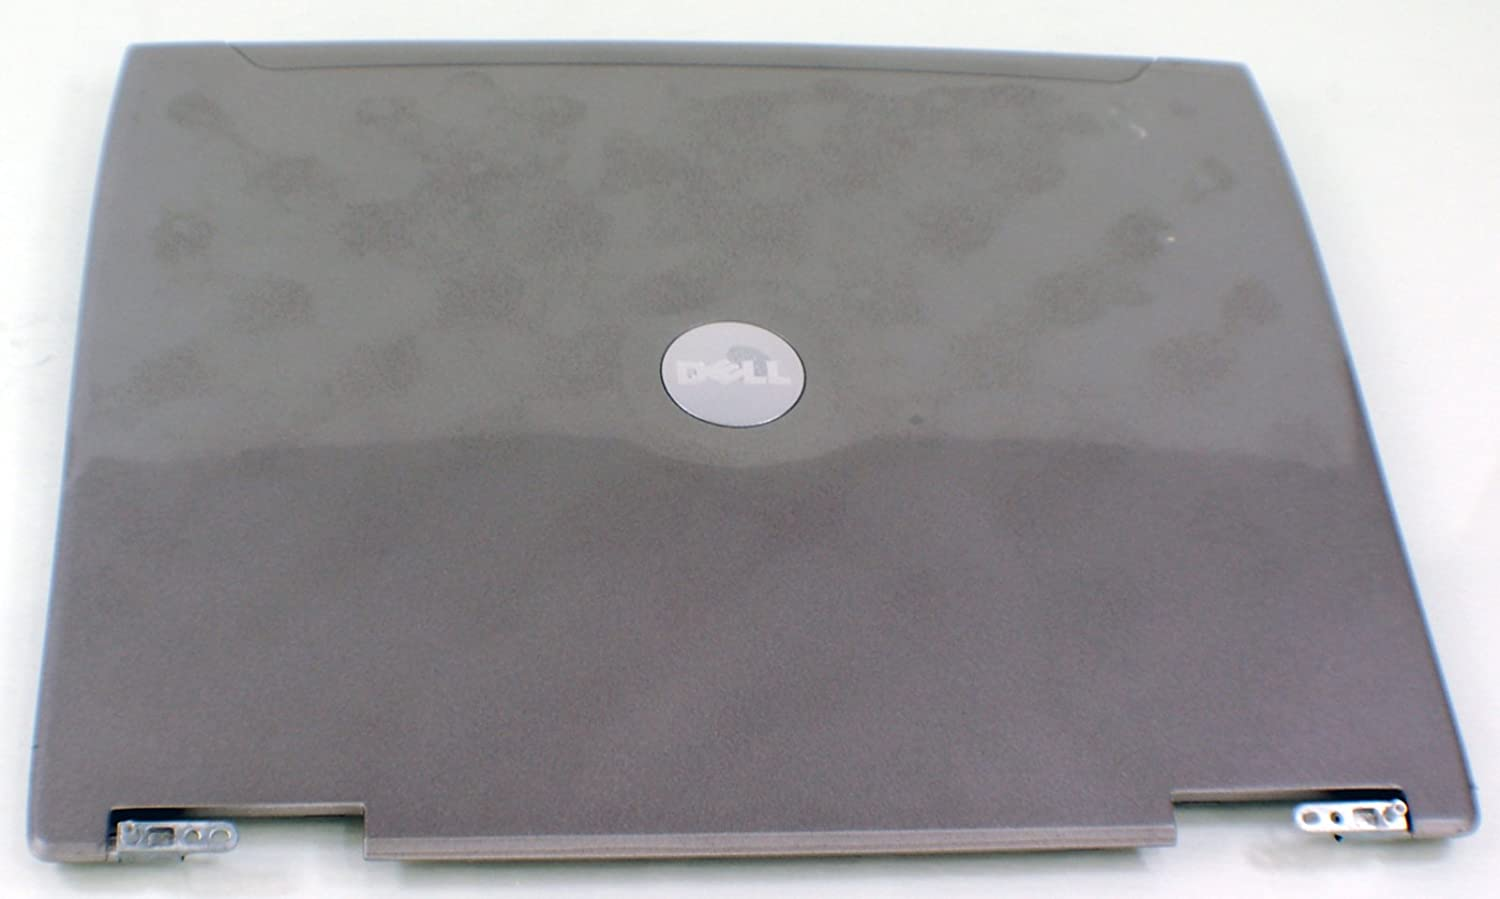 D4553 New OEM DELL Latitude D610 Laptop LCD Top Lid Rear Back Cover Panel Monitor Screen Case Hinge Assembly